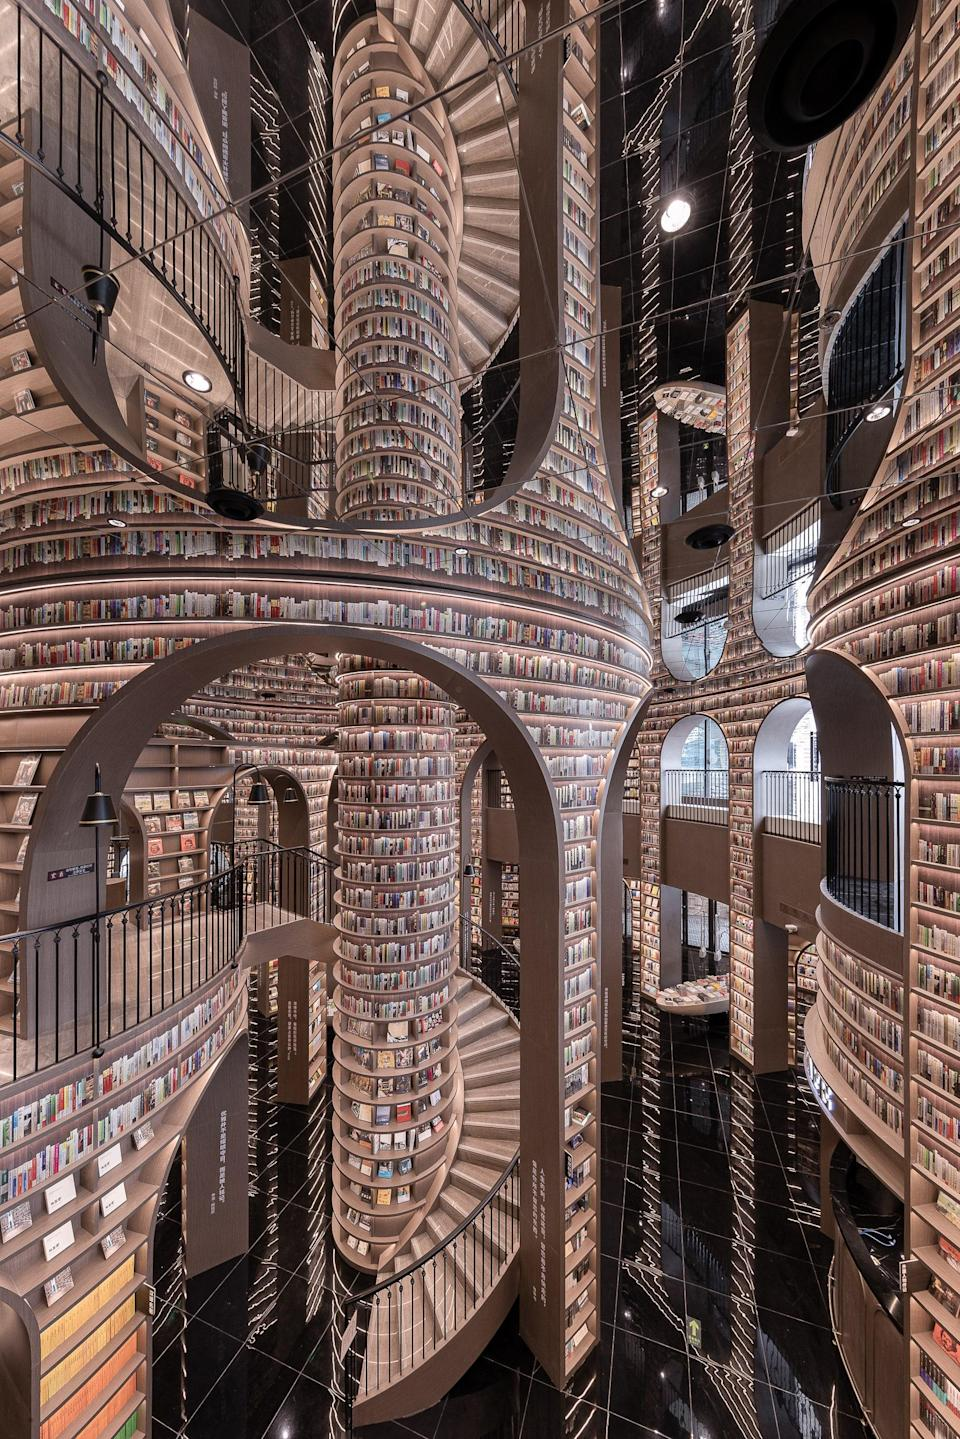 The architects went to great lengths in ensuring the lighting was such that each shelf provided a visual impact, while allowing visitors ease in finding specific books.